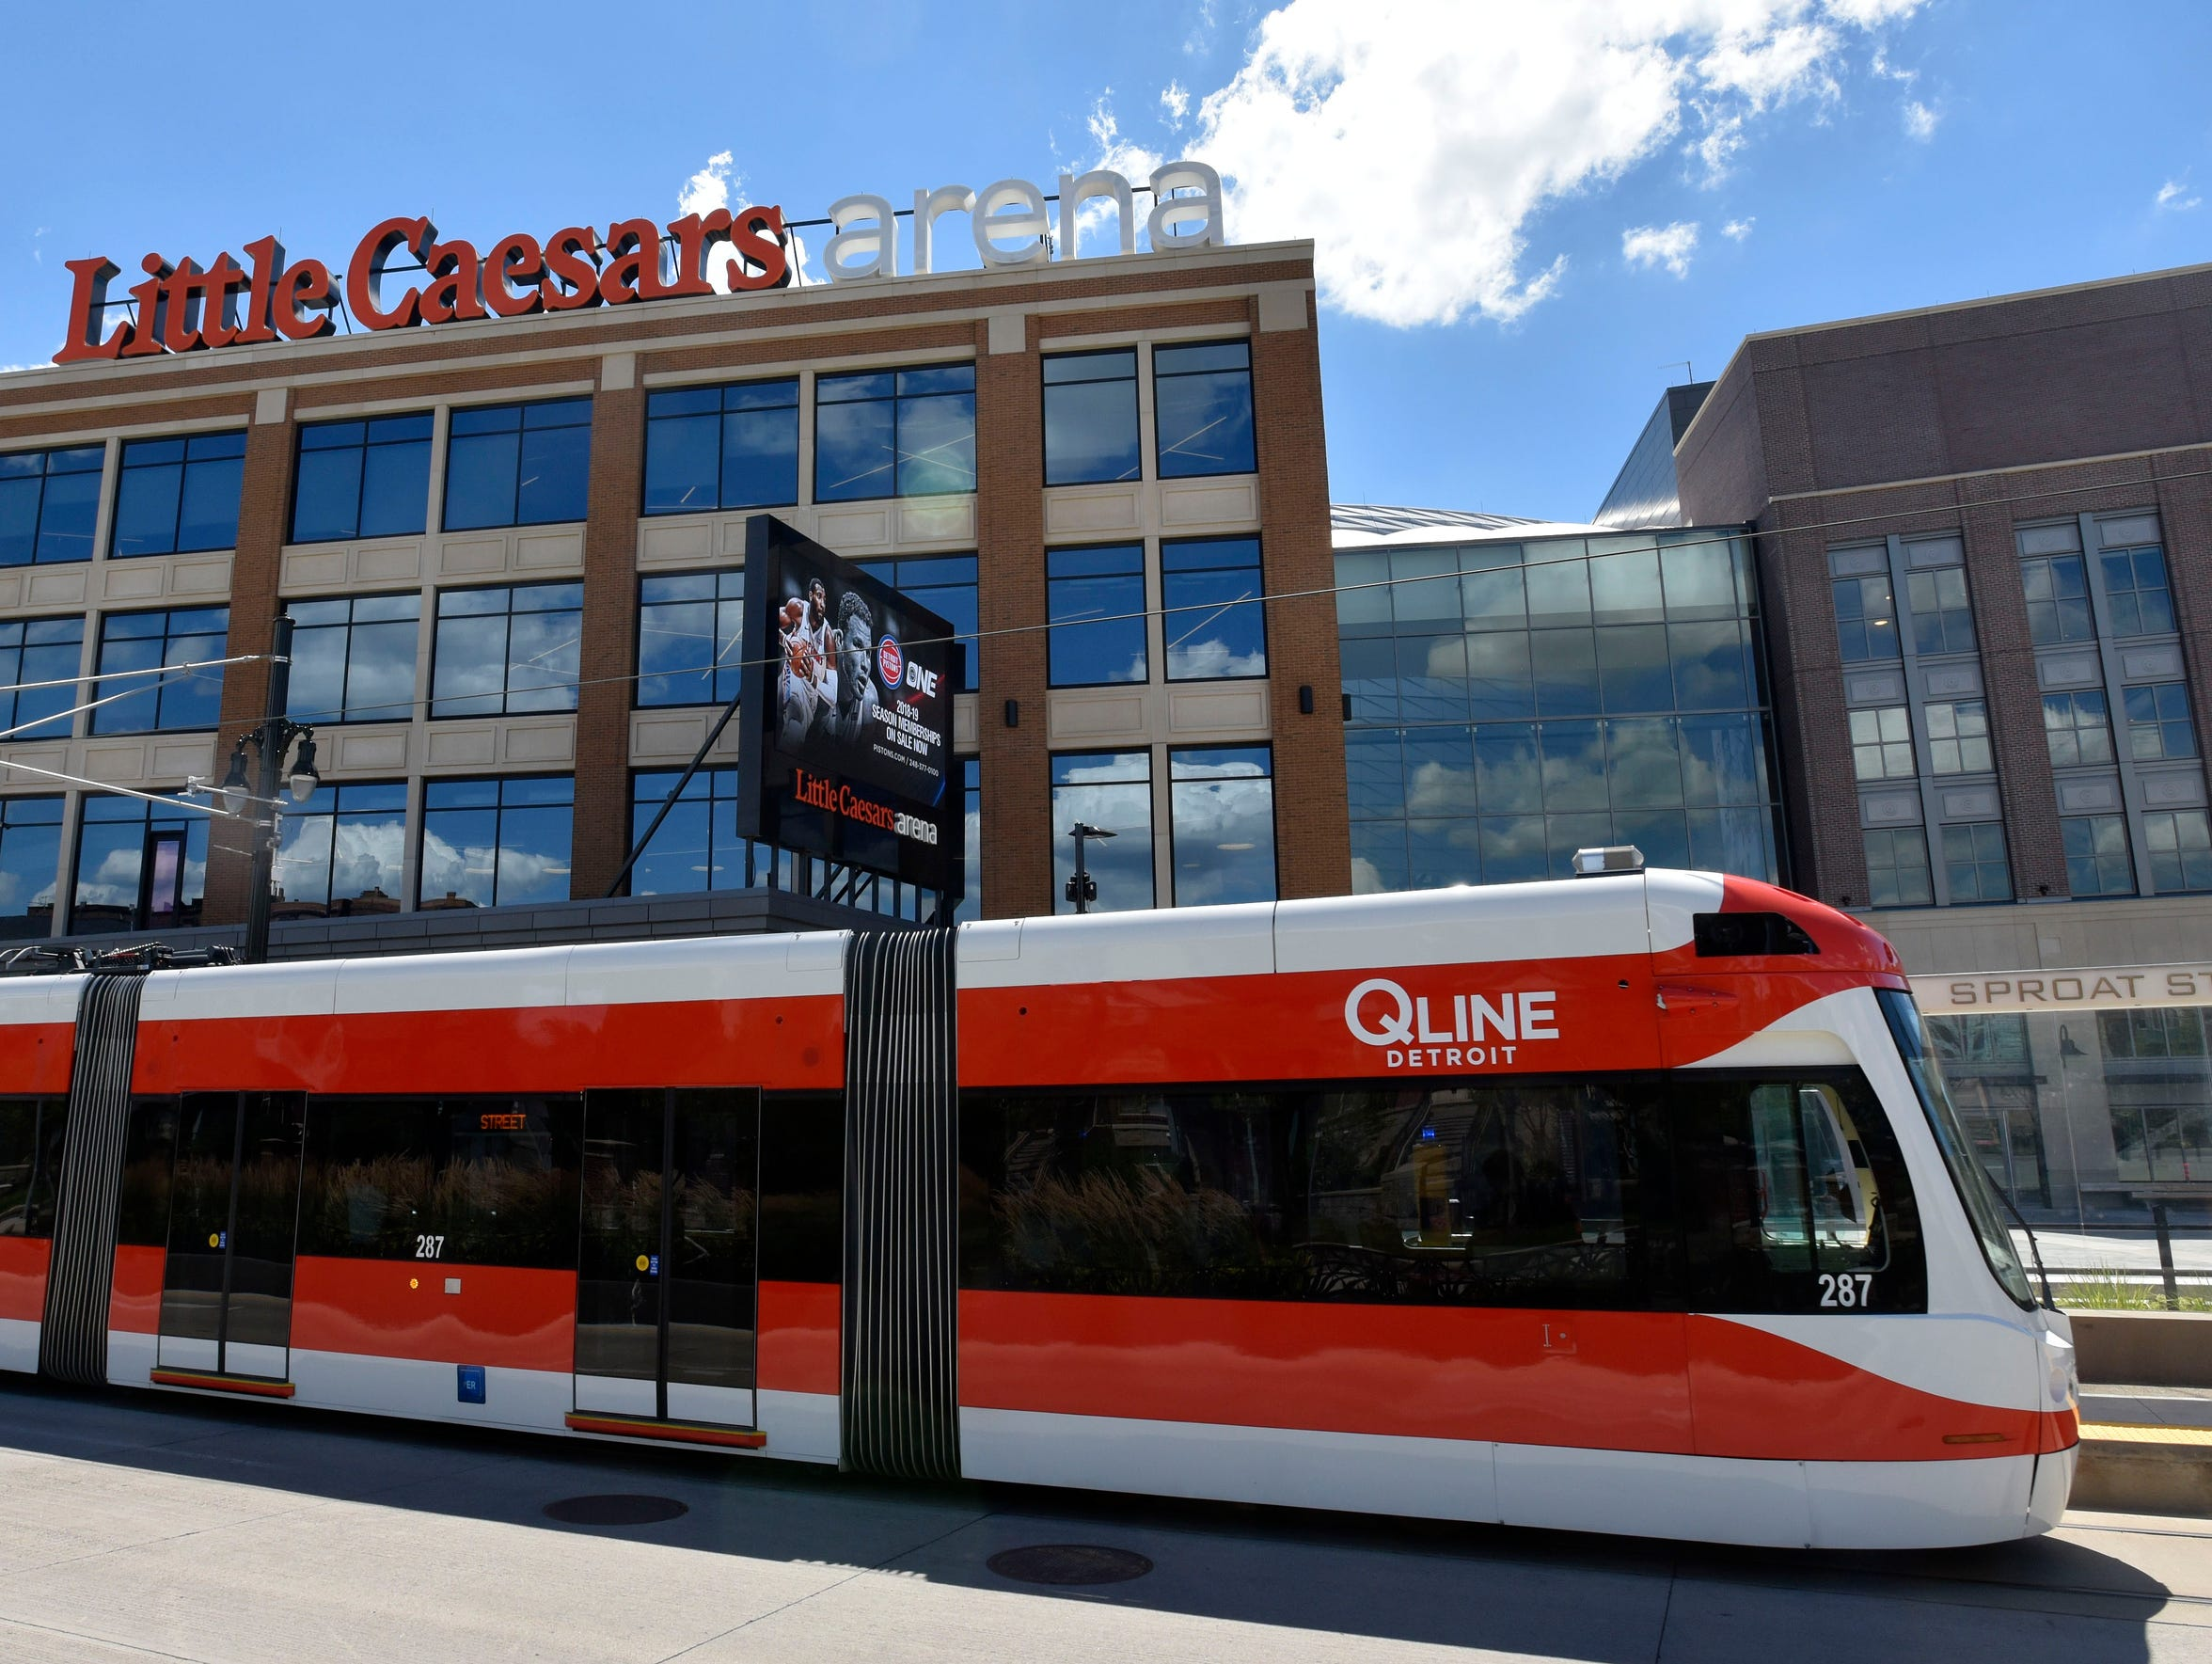 A QLine Detroit streetcar departs the Sproat Street